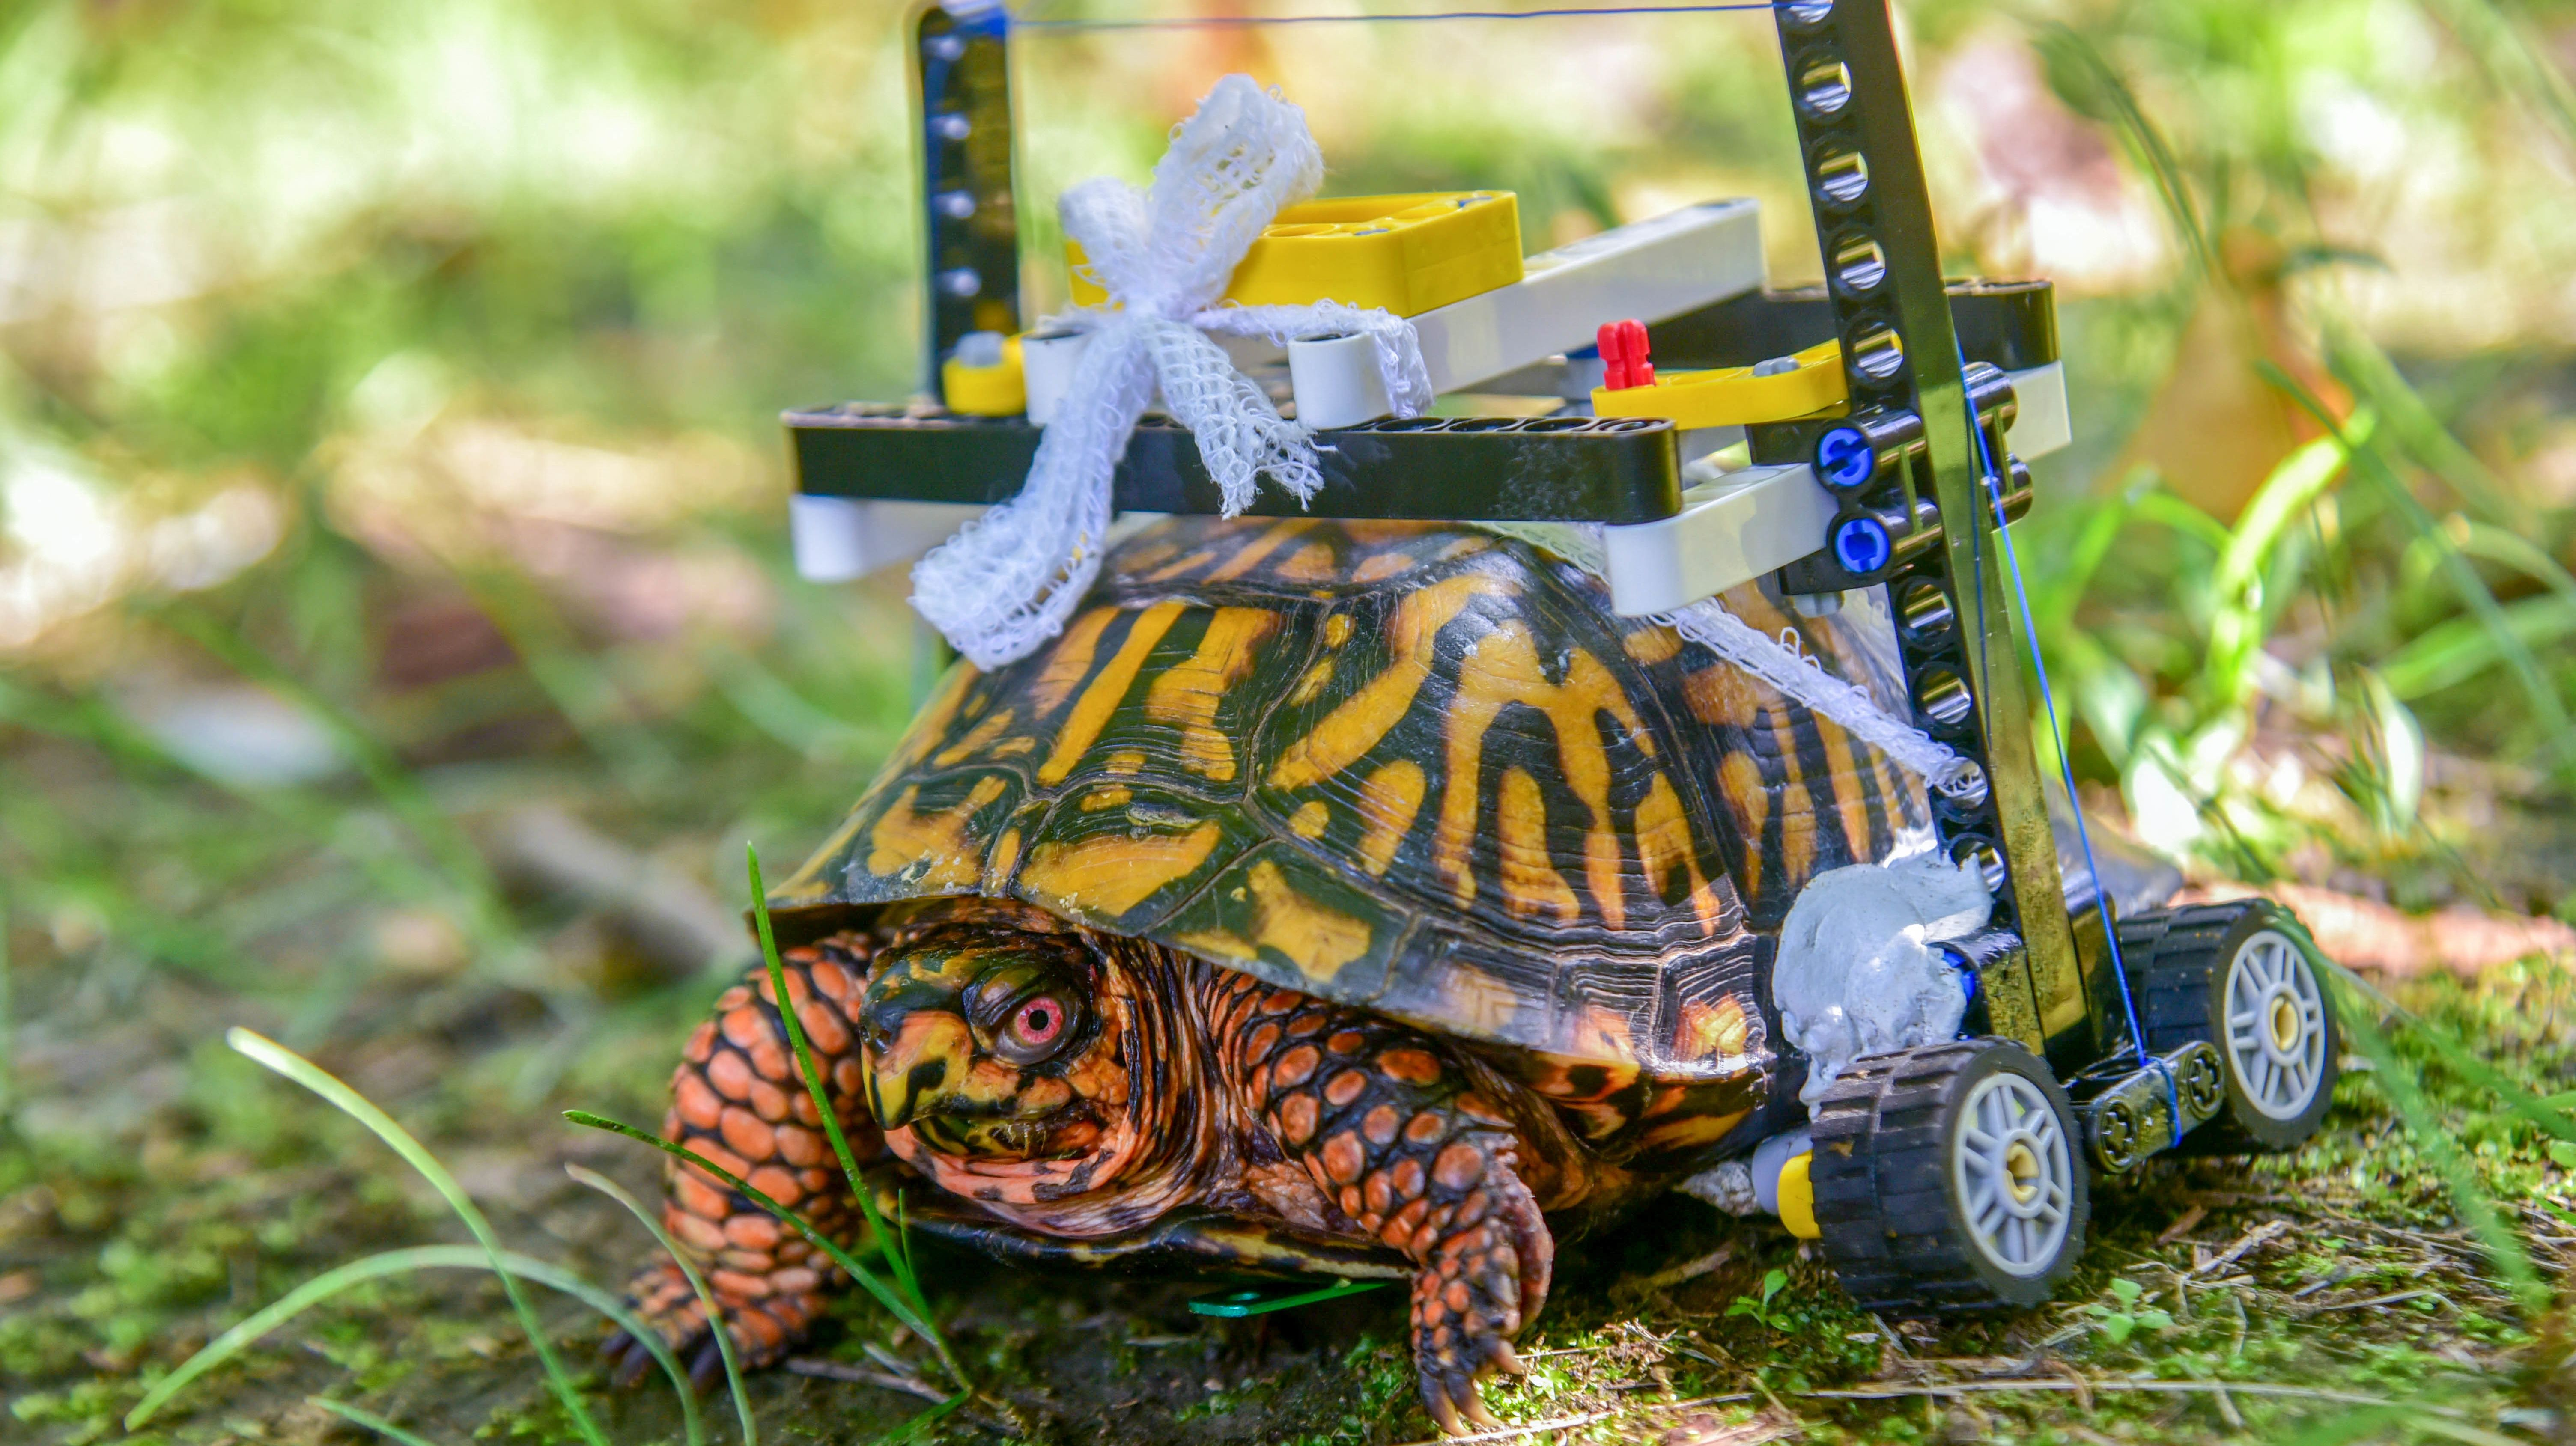 LEGO Wheelchair Gives Injured Turtle at Maryland Zoo a